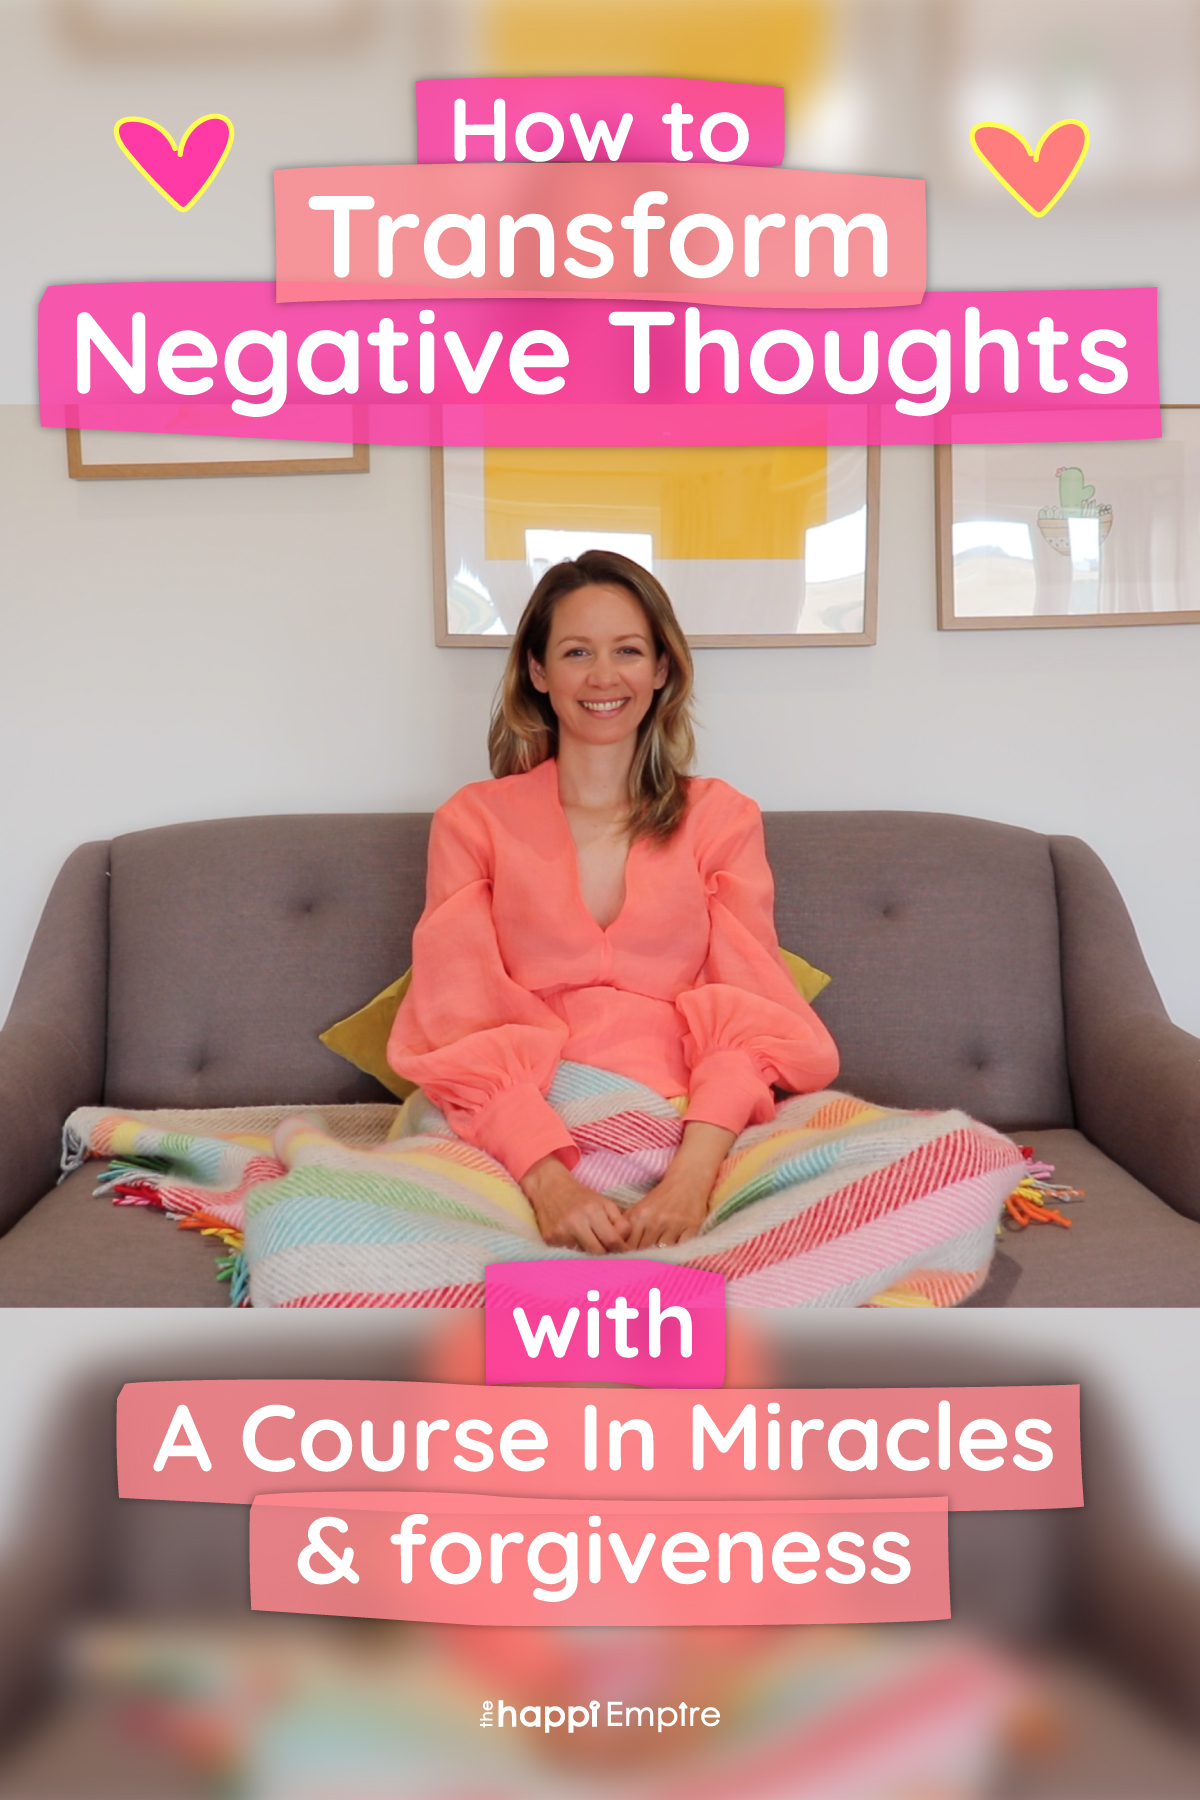 How to transform negative thoughts with A Course In Miracles & forgiveness